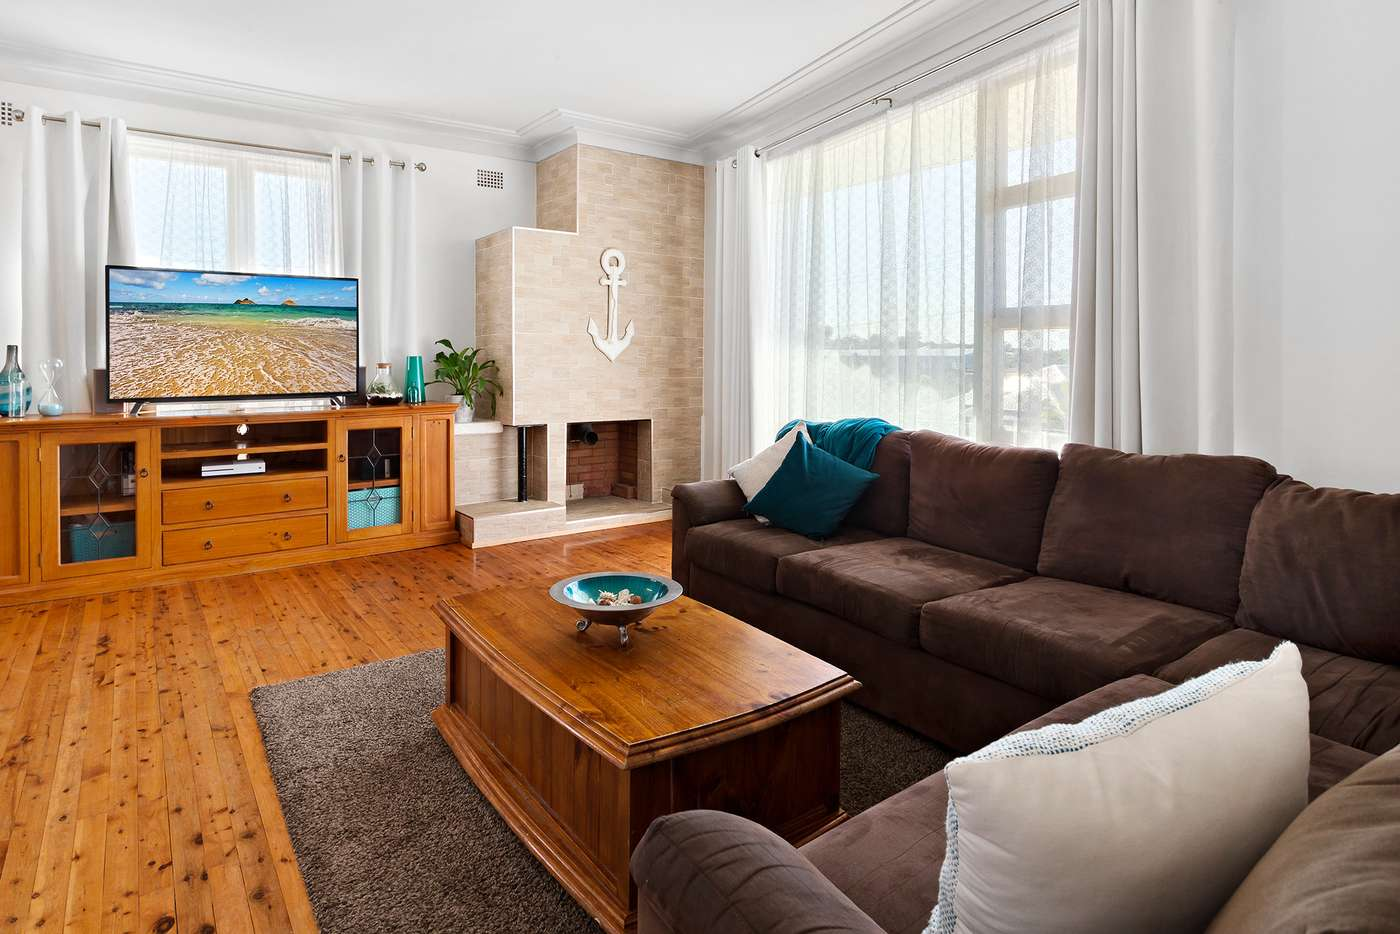 Main view of Homely house listing, 1 Bluebell Street, Belmont NSW 2280